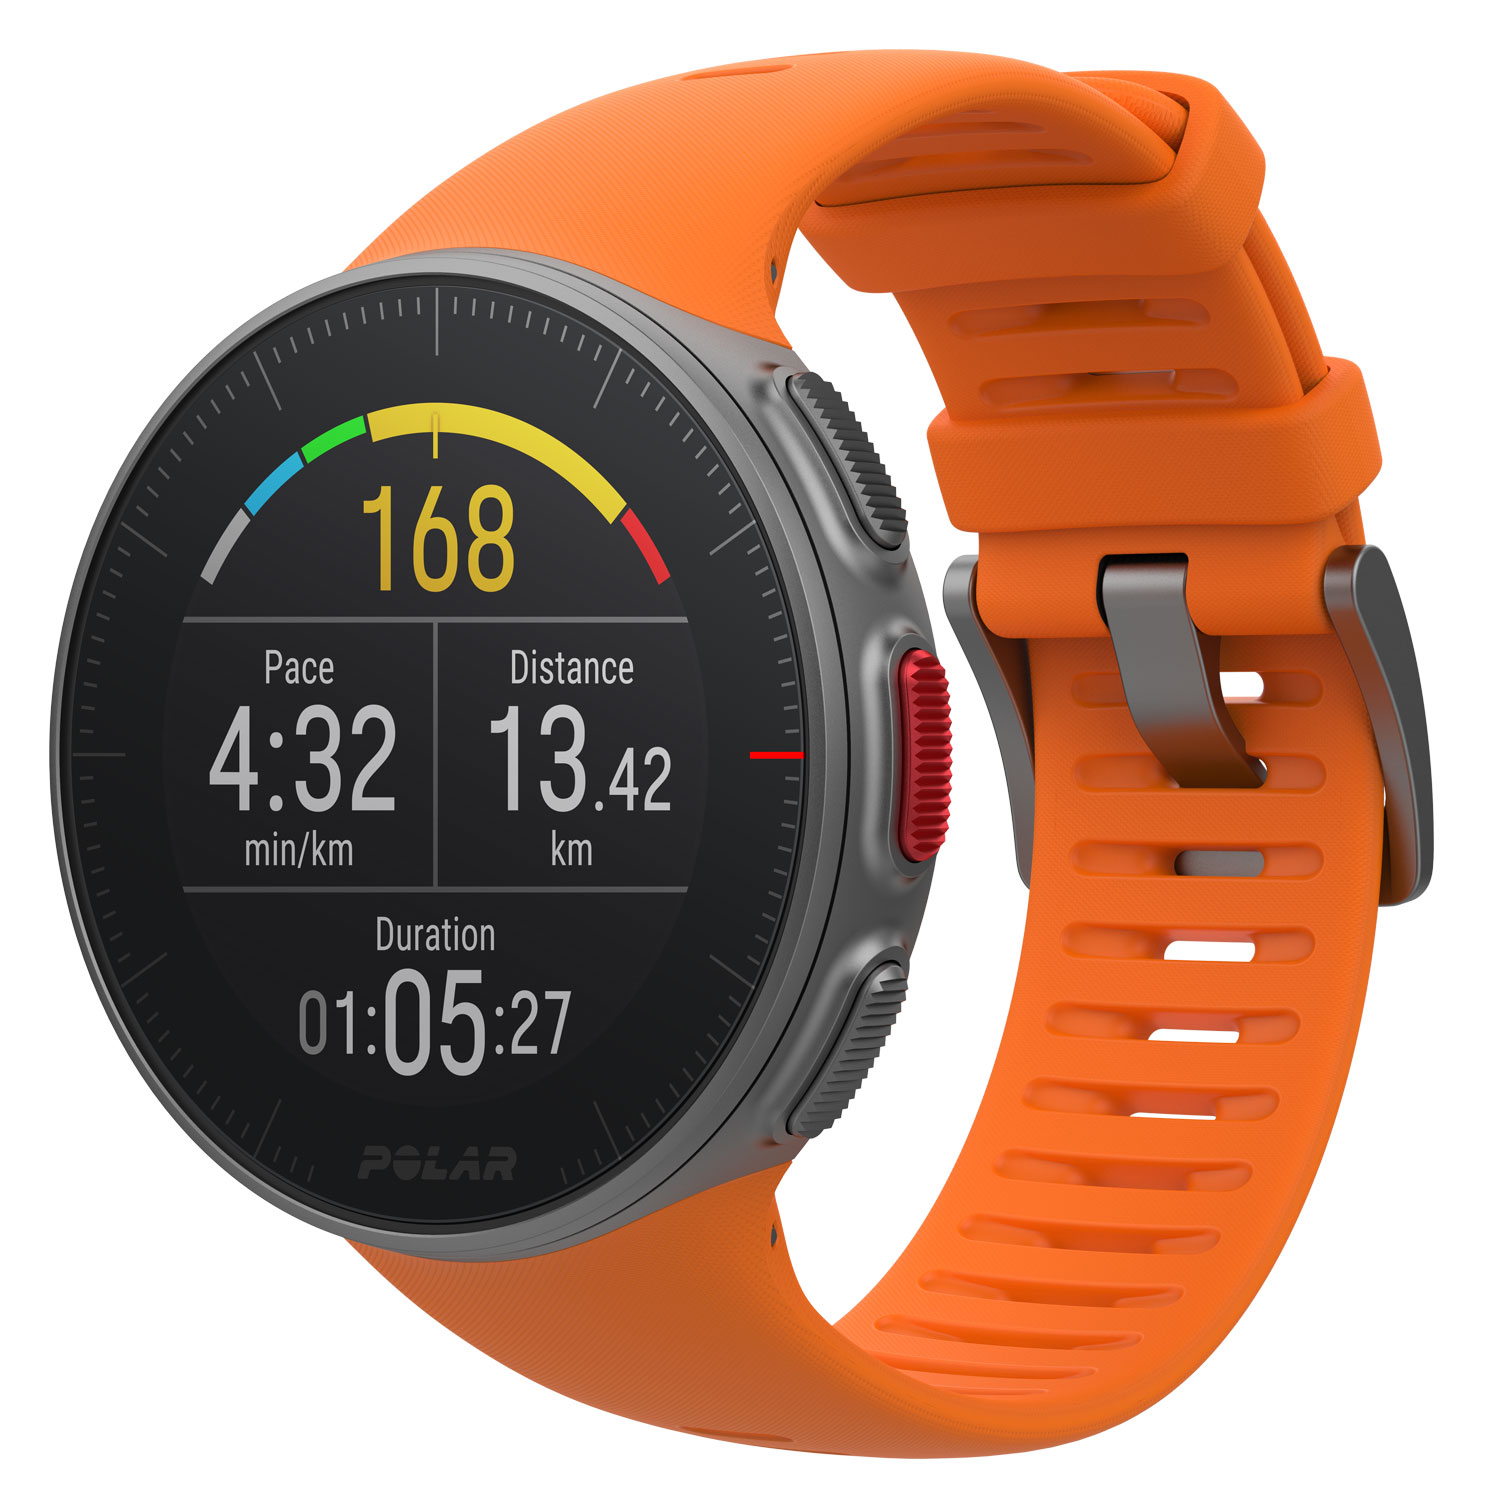 6a258ae48 ... who trains like a pro. If you re looking for a high-end waterproof  companion for triathlon or marathon training